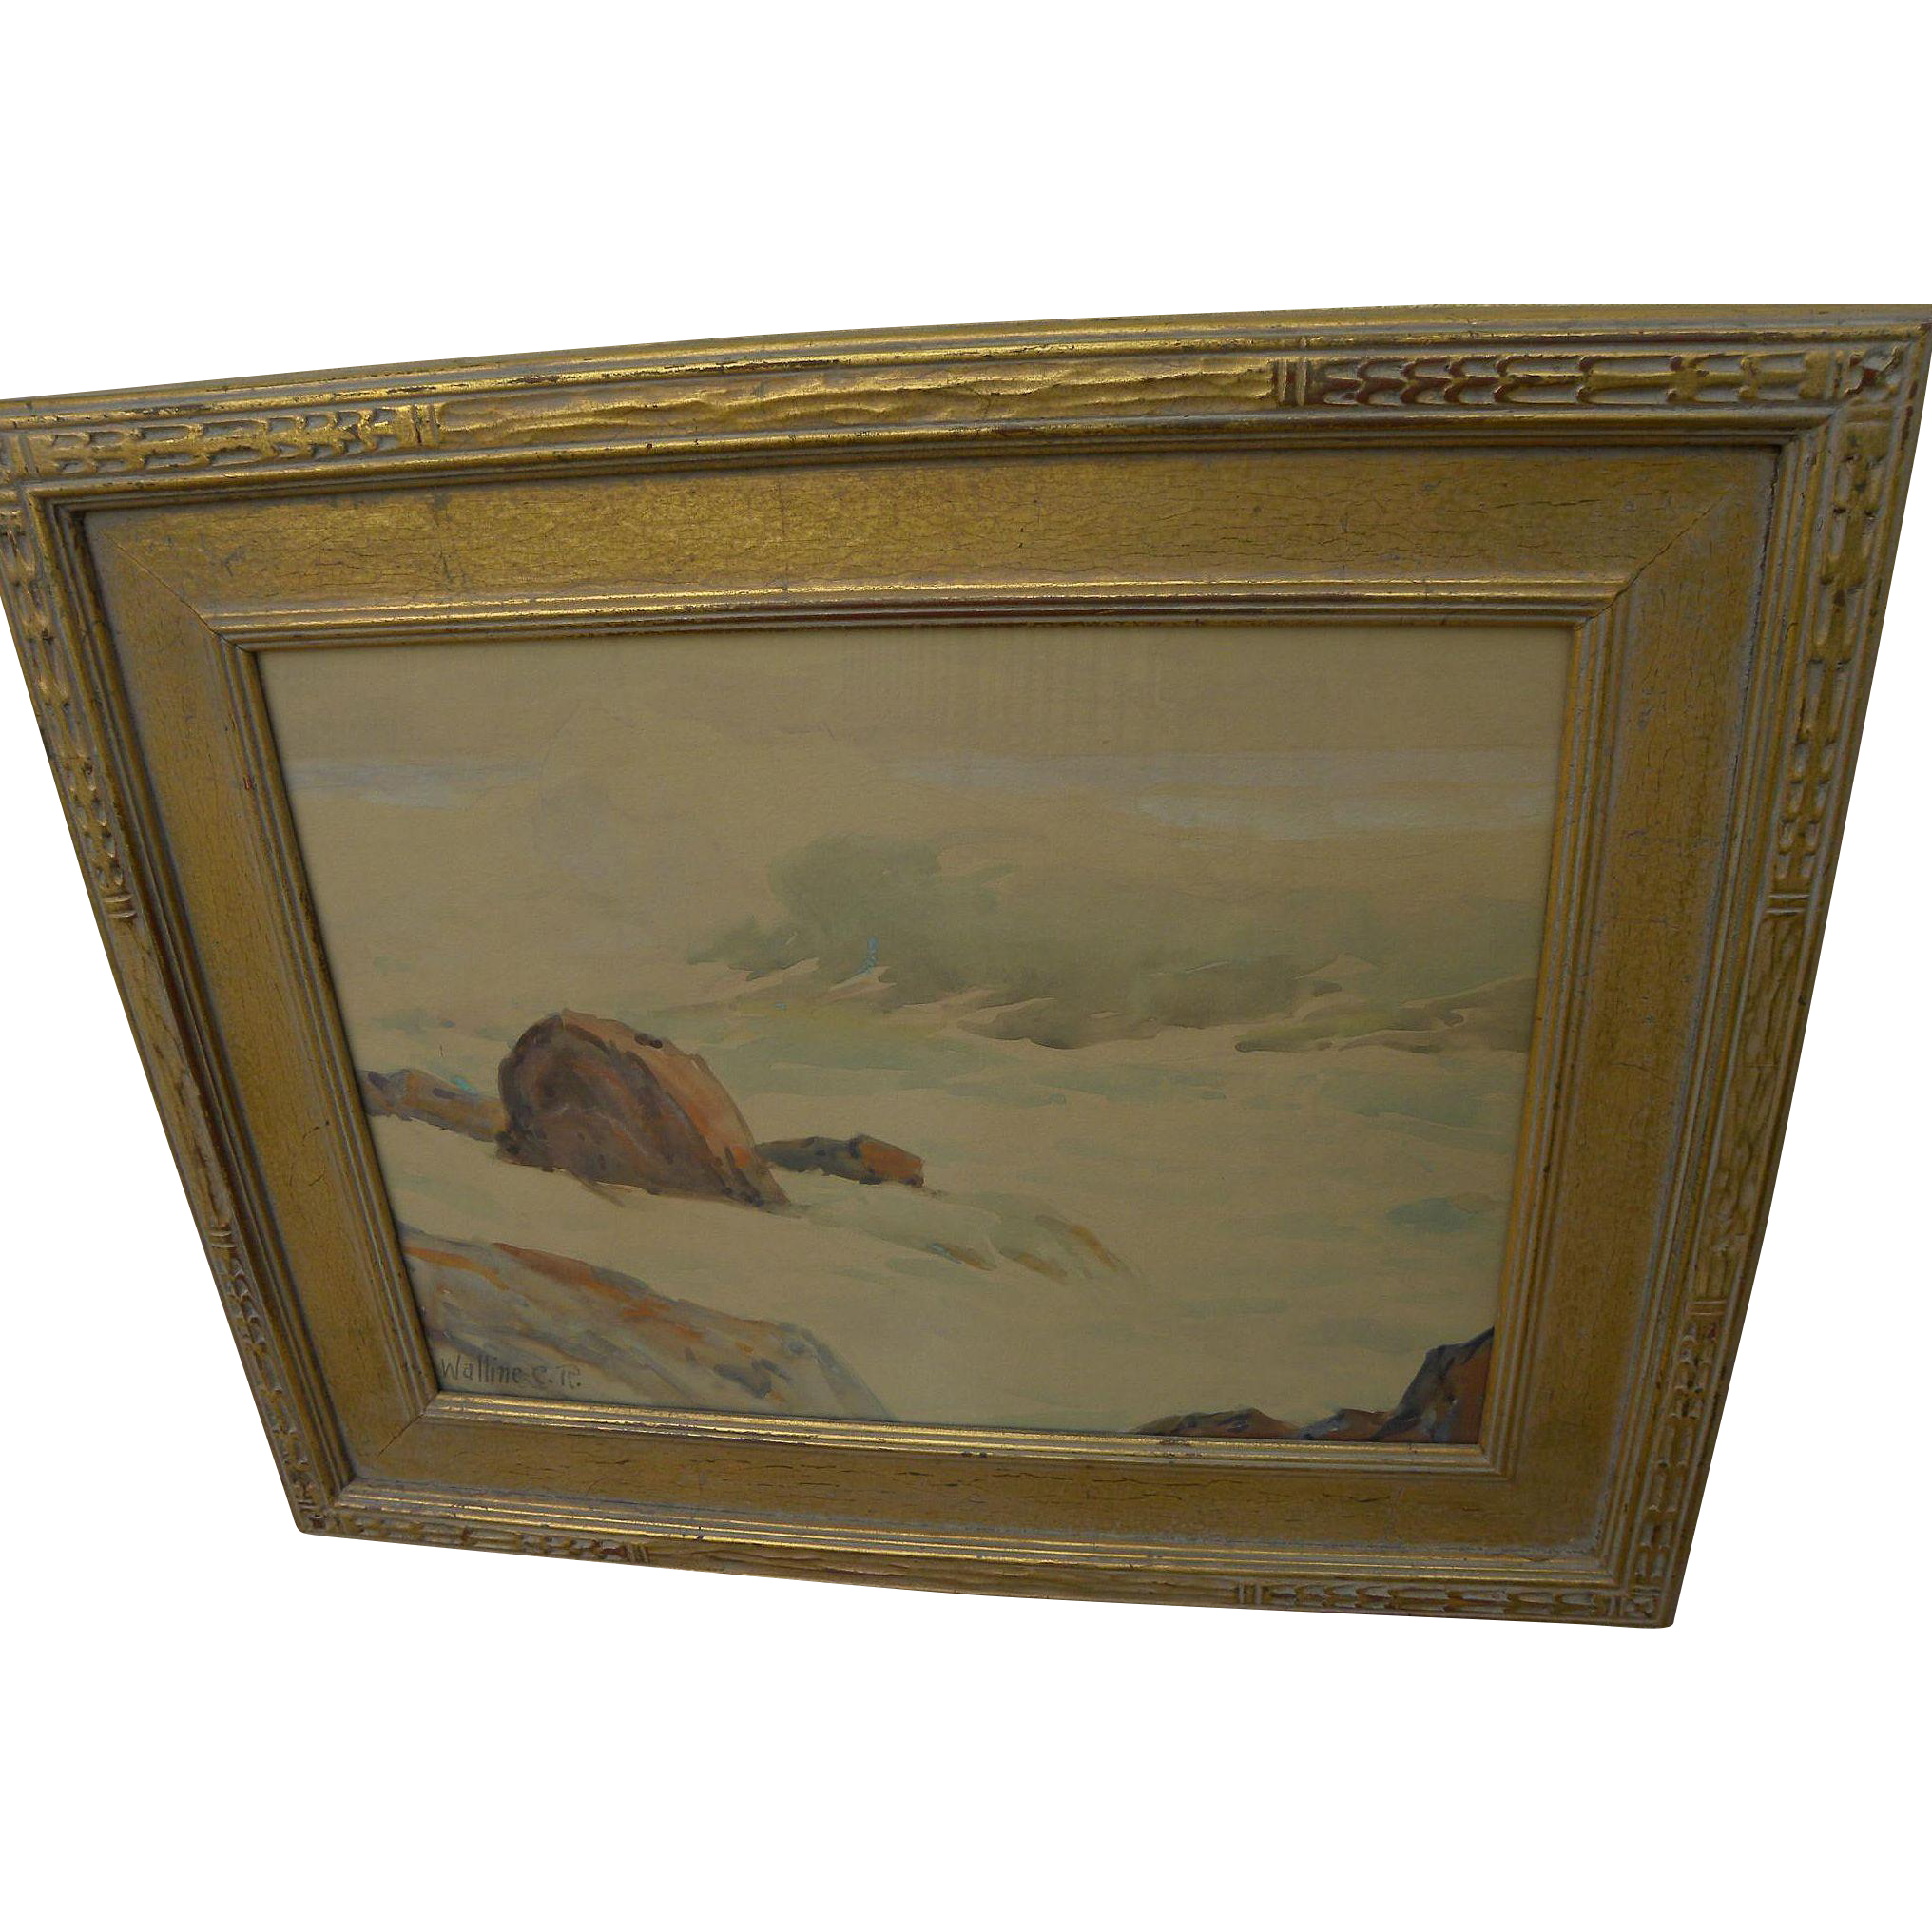 CARL R. WALLINE (1884-1976) California plein air art 1940's watercolor coastal seascape nicely framed